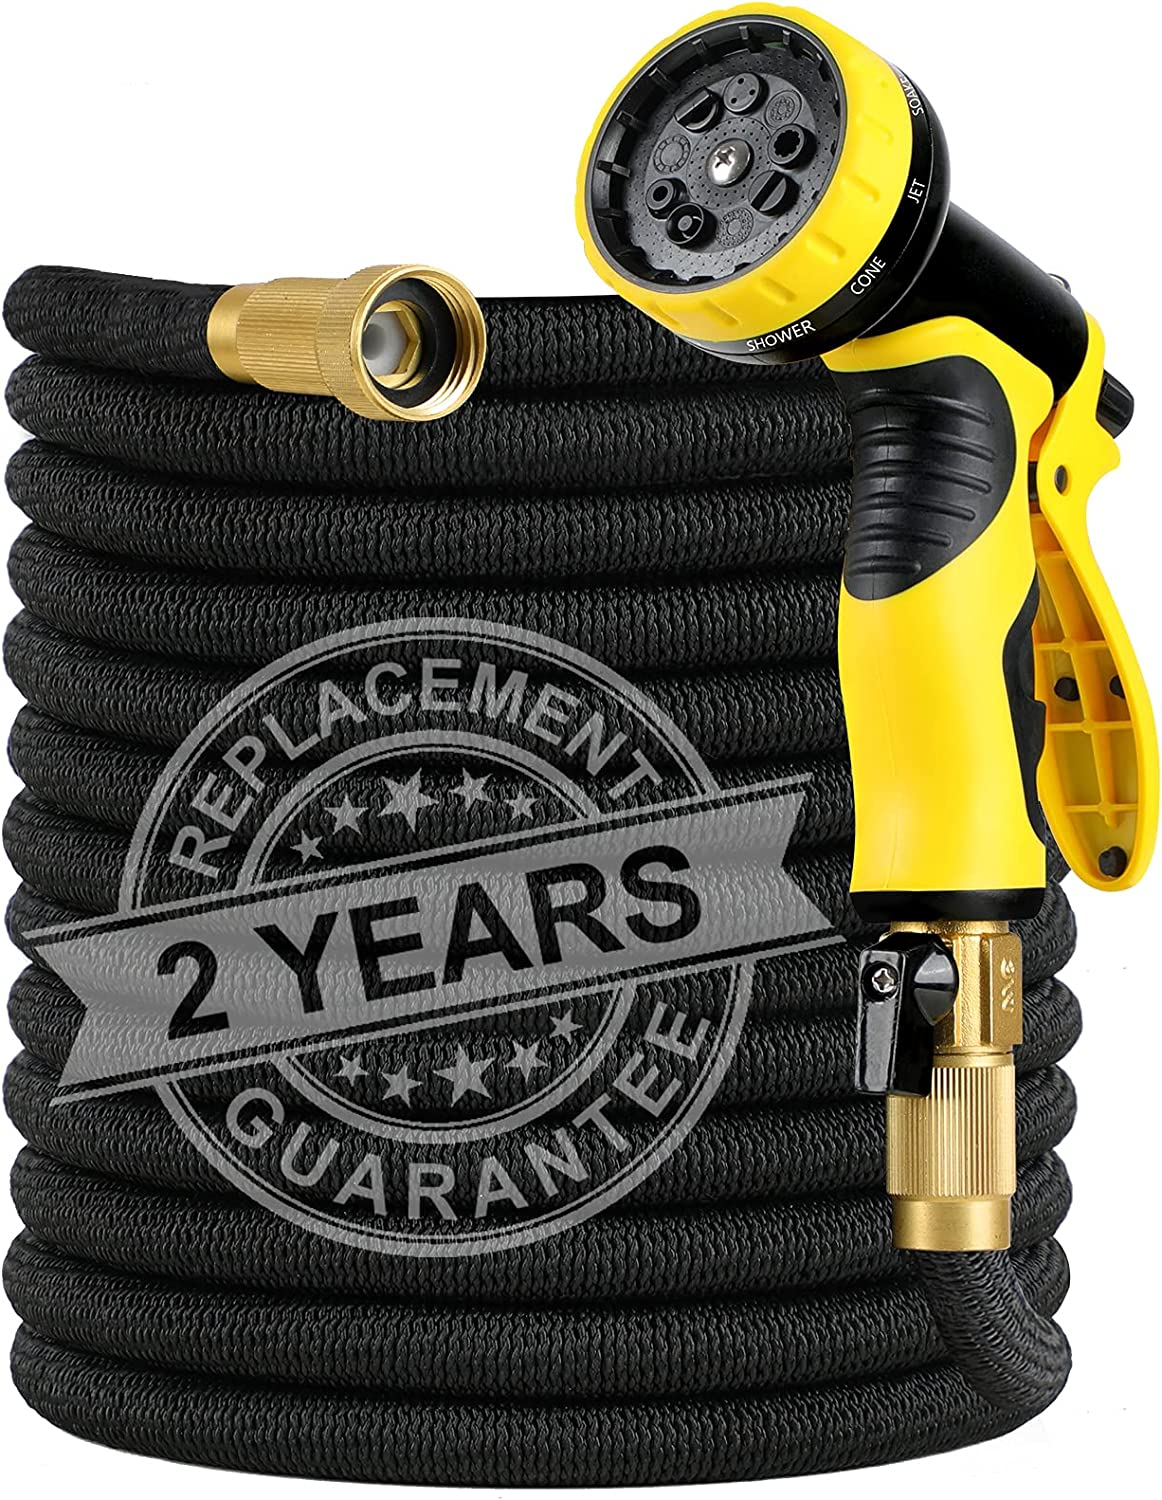 Expandable Garden Hose, 50FT Leakproof Flexible Water Hose with 9 Function Nozzle, Super Durable Fabric & 12-layers Latex Core Solid Brass Fittings Expanding Watering Hoses Gardening Yard Hose Pipe